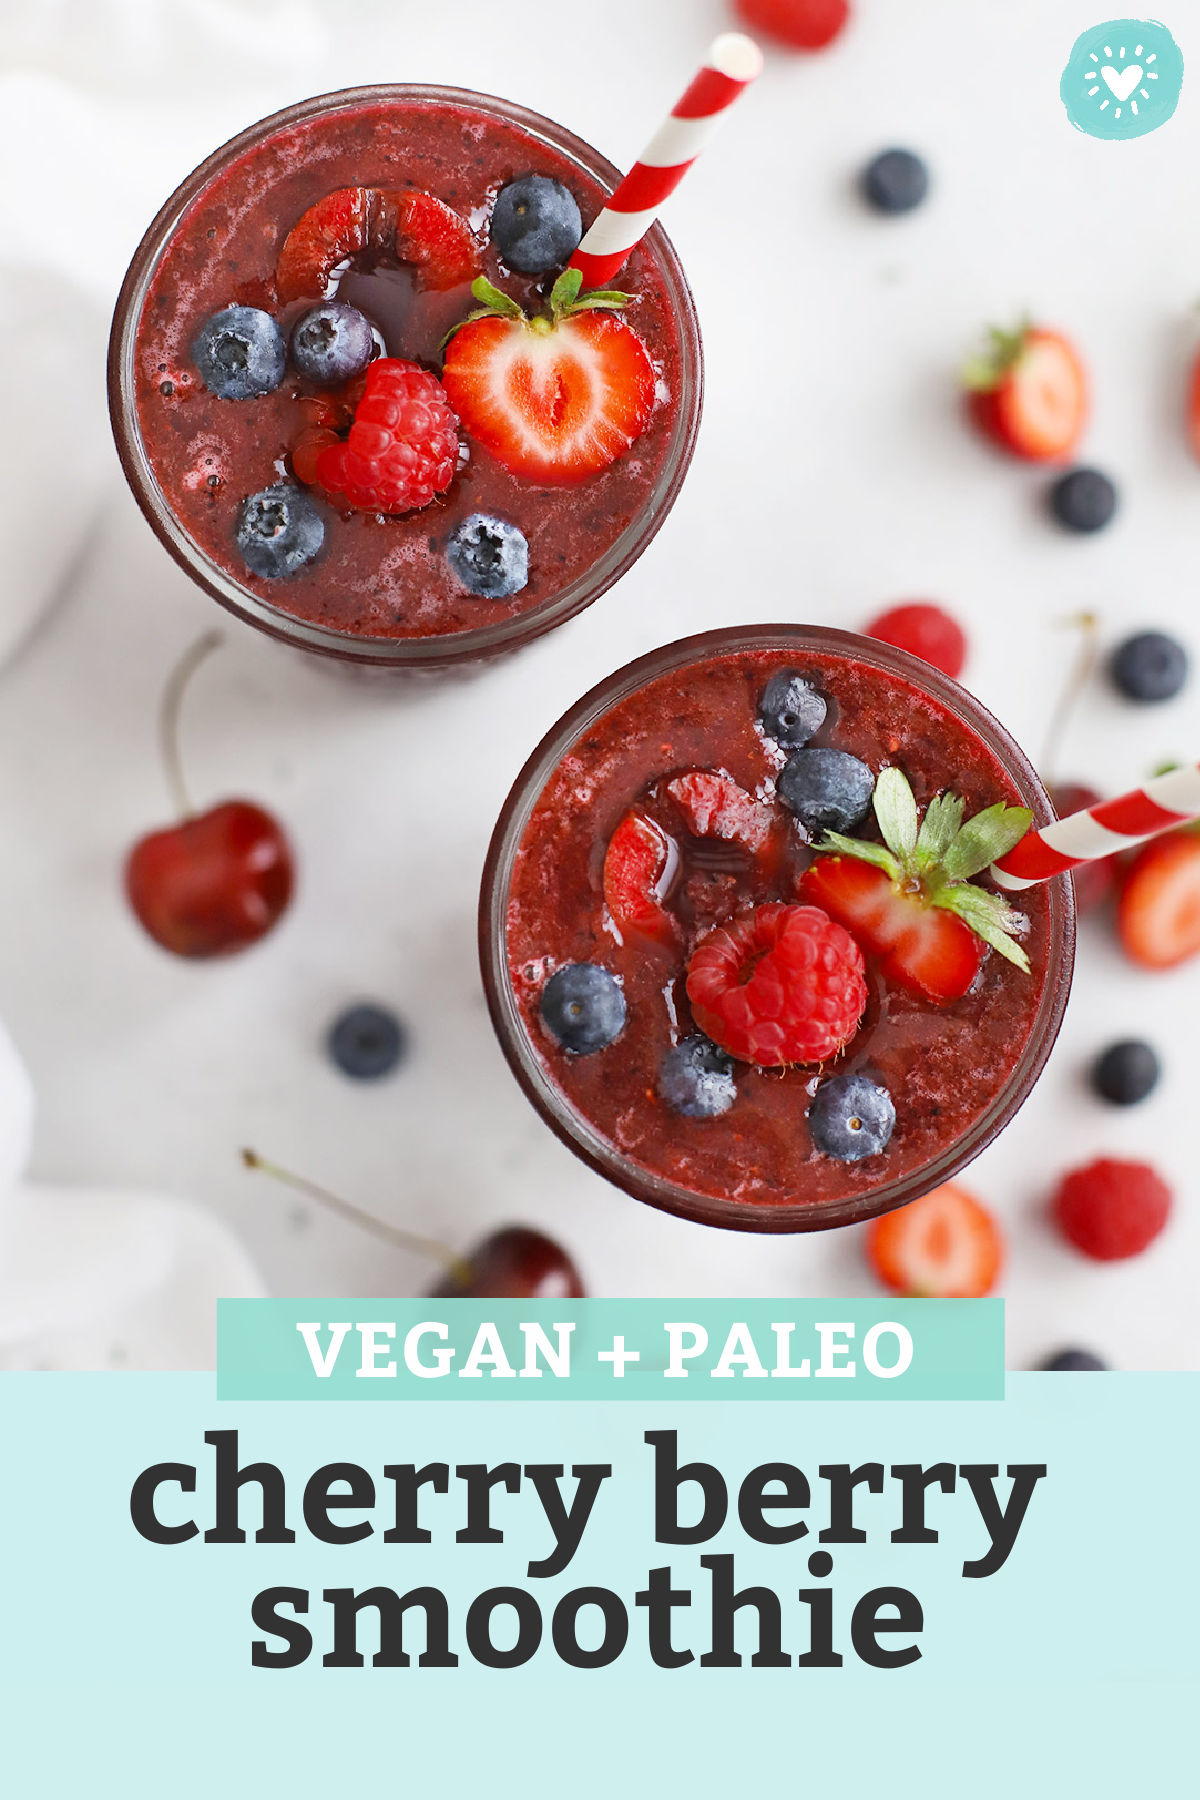 """Two glasses of Vegan Cherry Berry Smoothie with red and white straws with text overlay that reads """"Vegan + Paleo Cherry Berry Smoothie"""""""